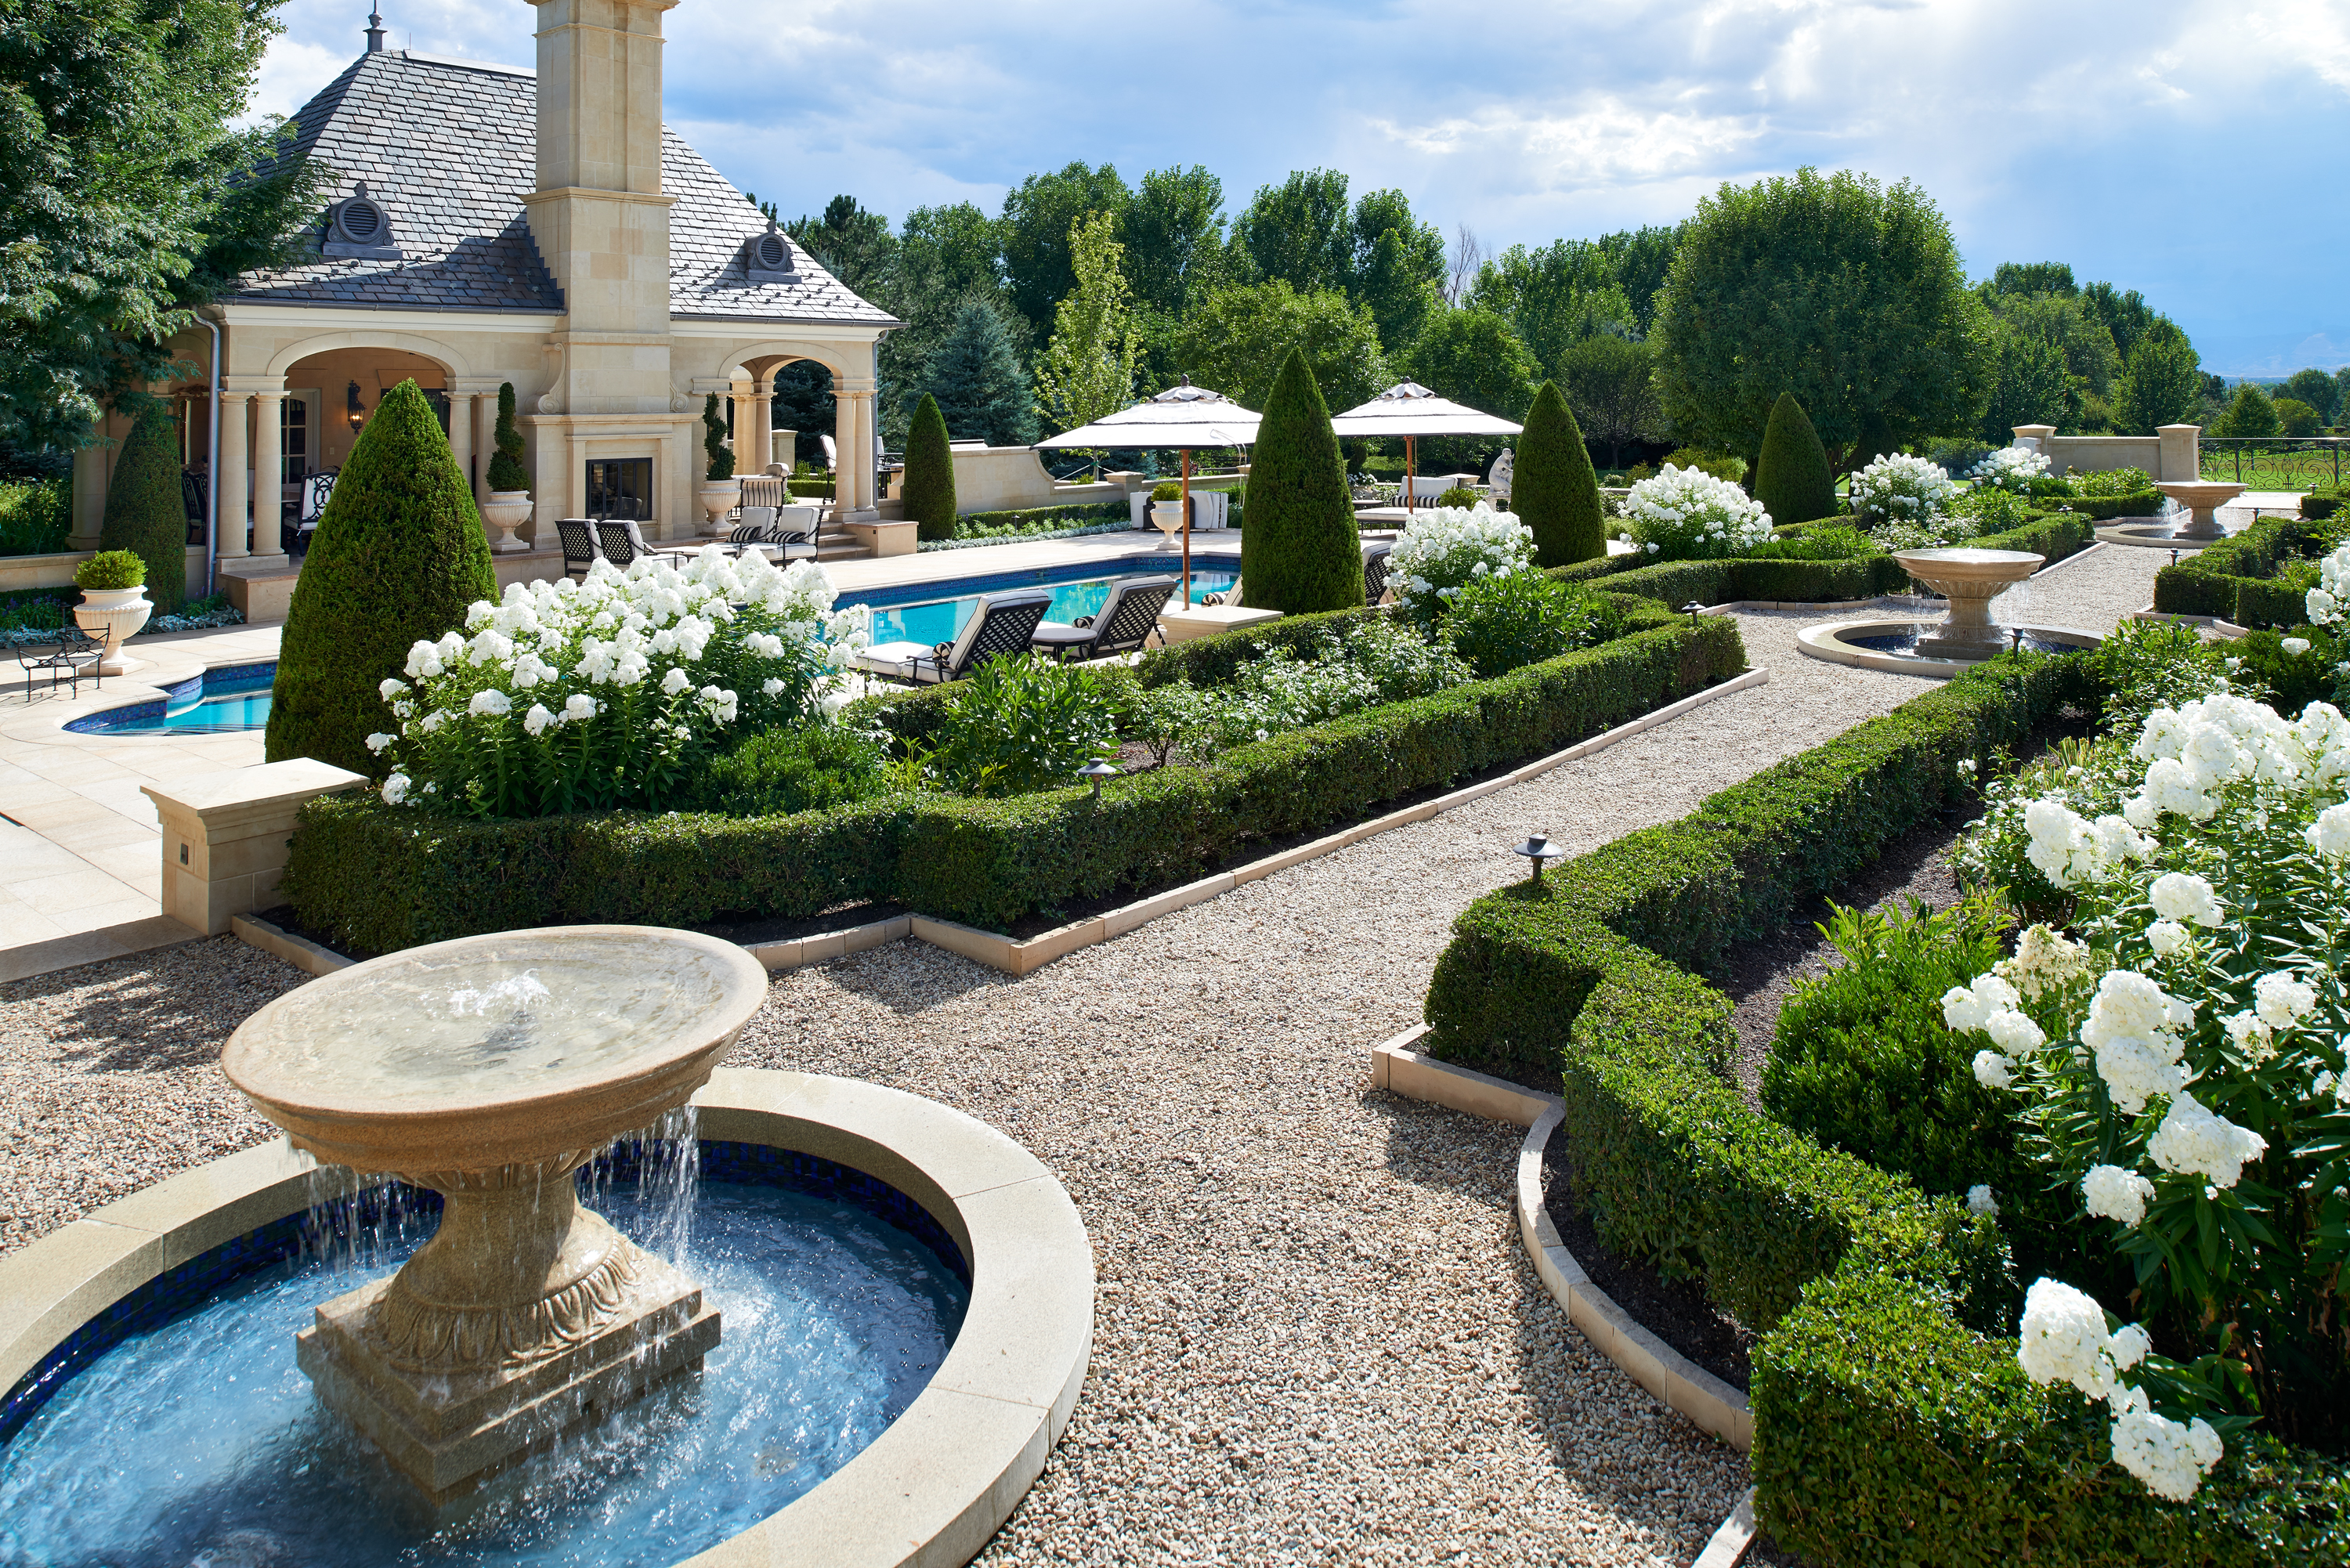 CherryHills1-white-garden-toward-pool